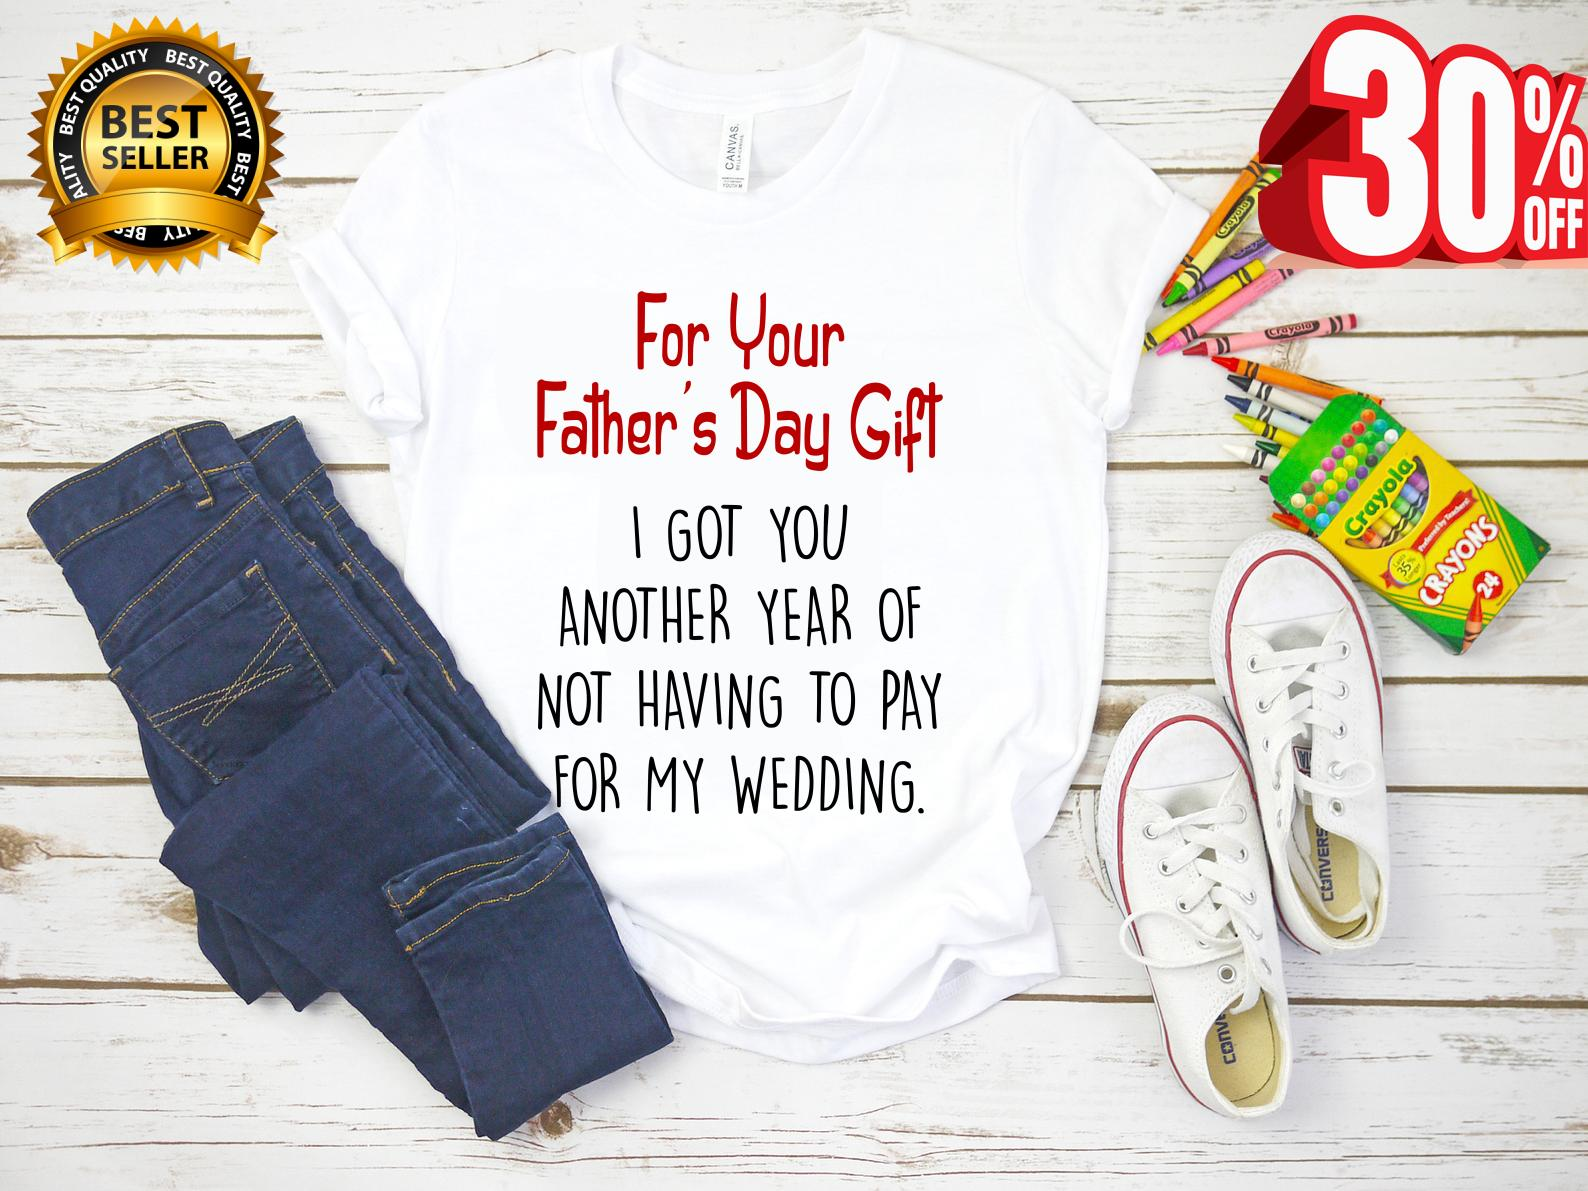 How Much To Pay For A Wedding Gift: For Your Father's Day Gift I Got You Another Year Or Not